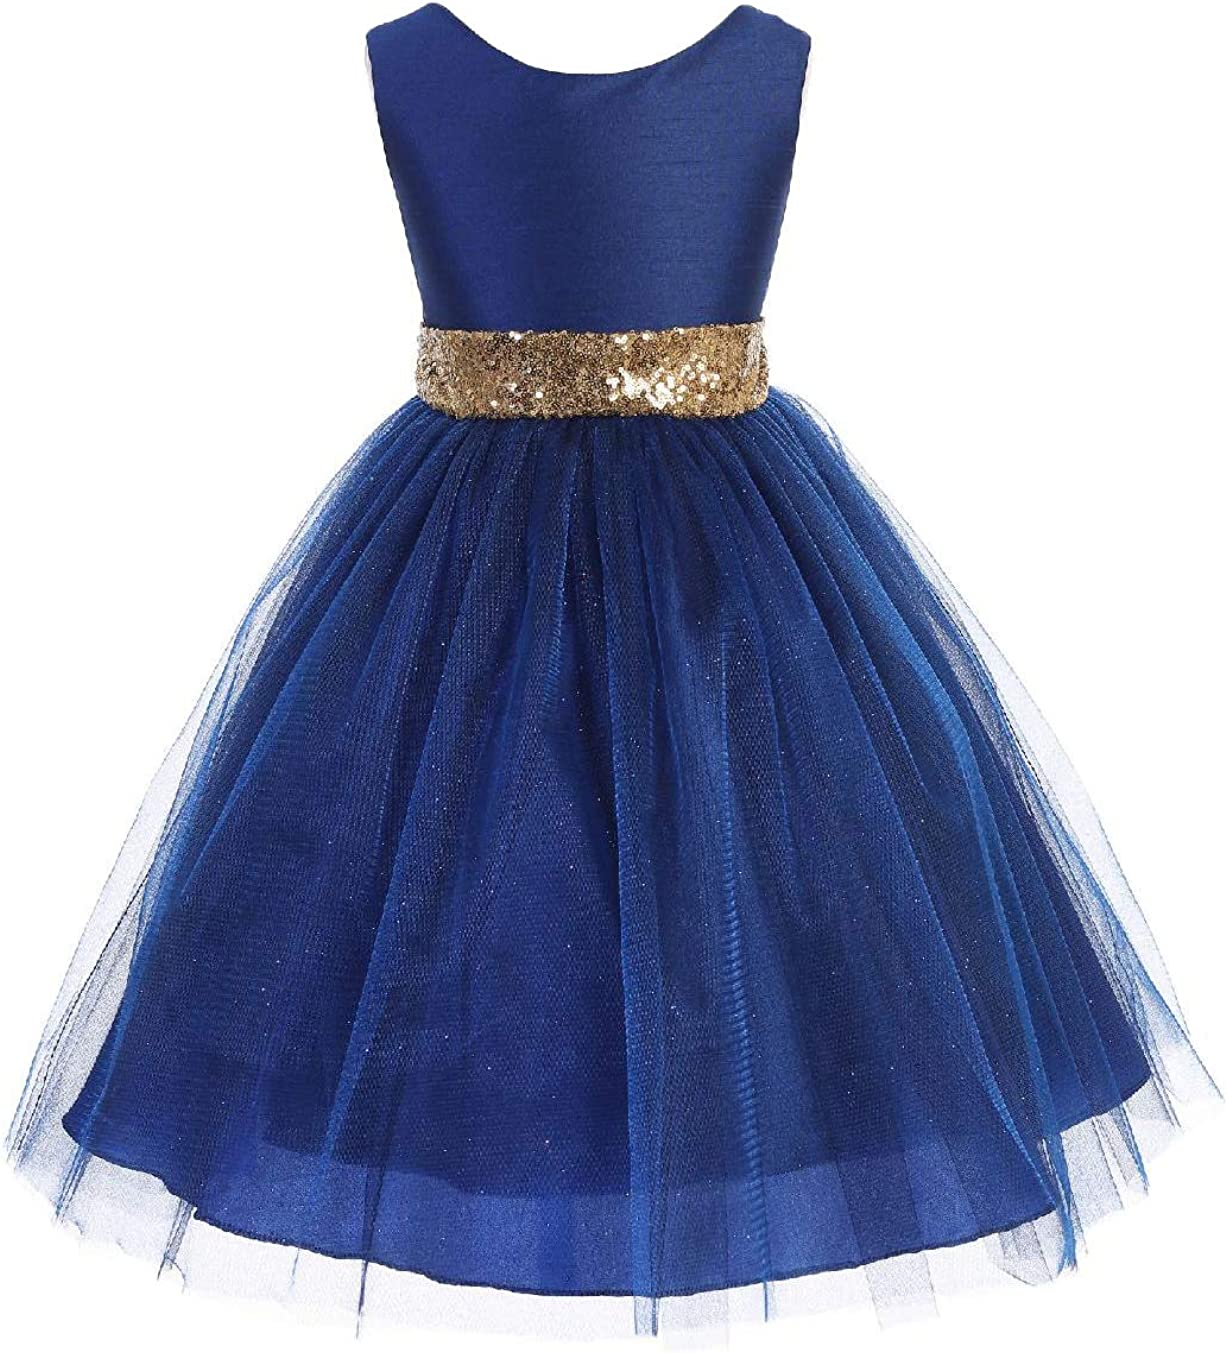 Blue Flower Girl Dupioni Tulle Glitter Dress Sequins Christmas Holidays Party